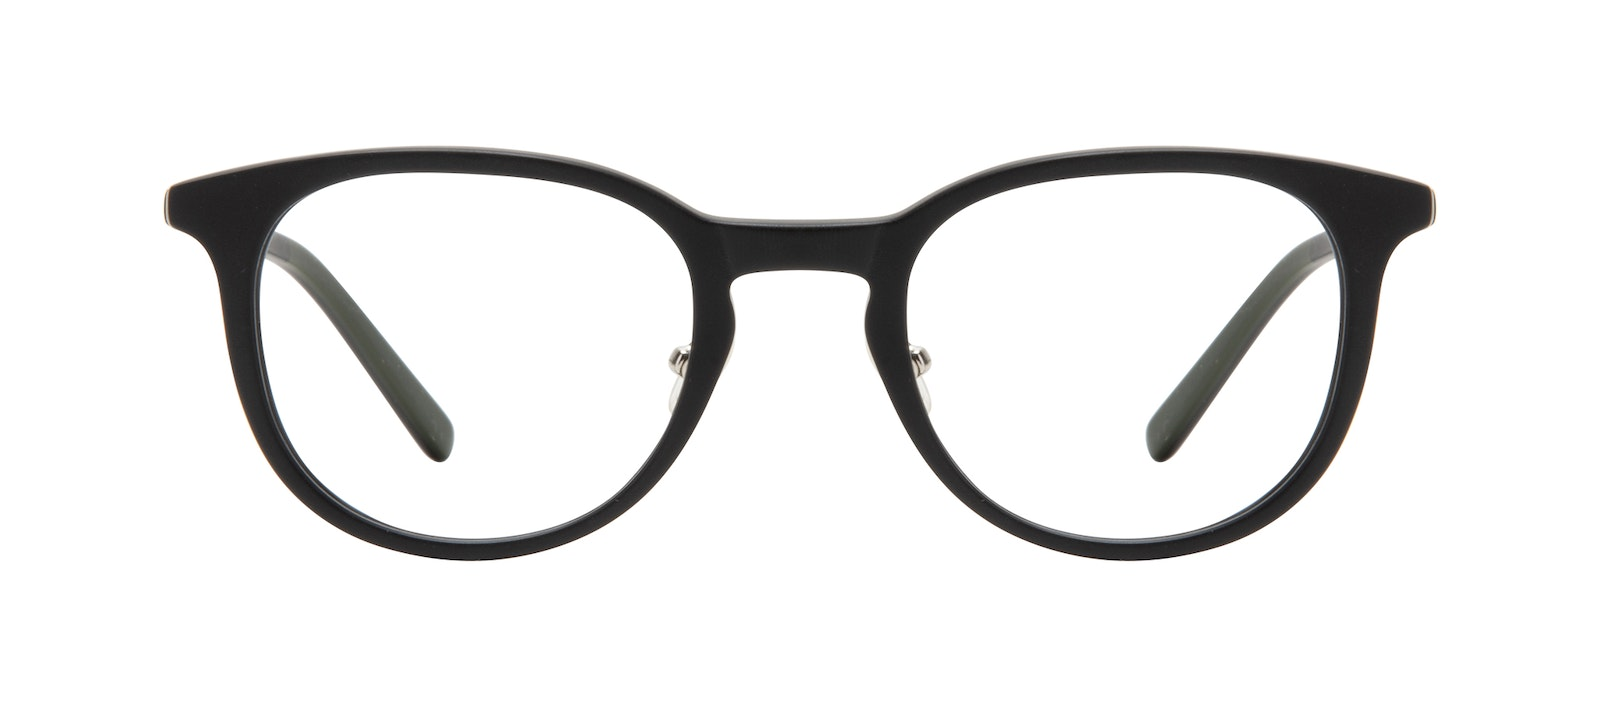 Affordable Fashion Glasses Round Eyeglasses Men Coast Onyx Matte Front